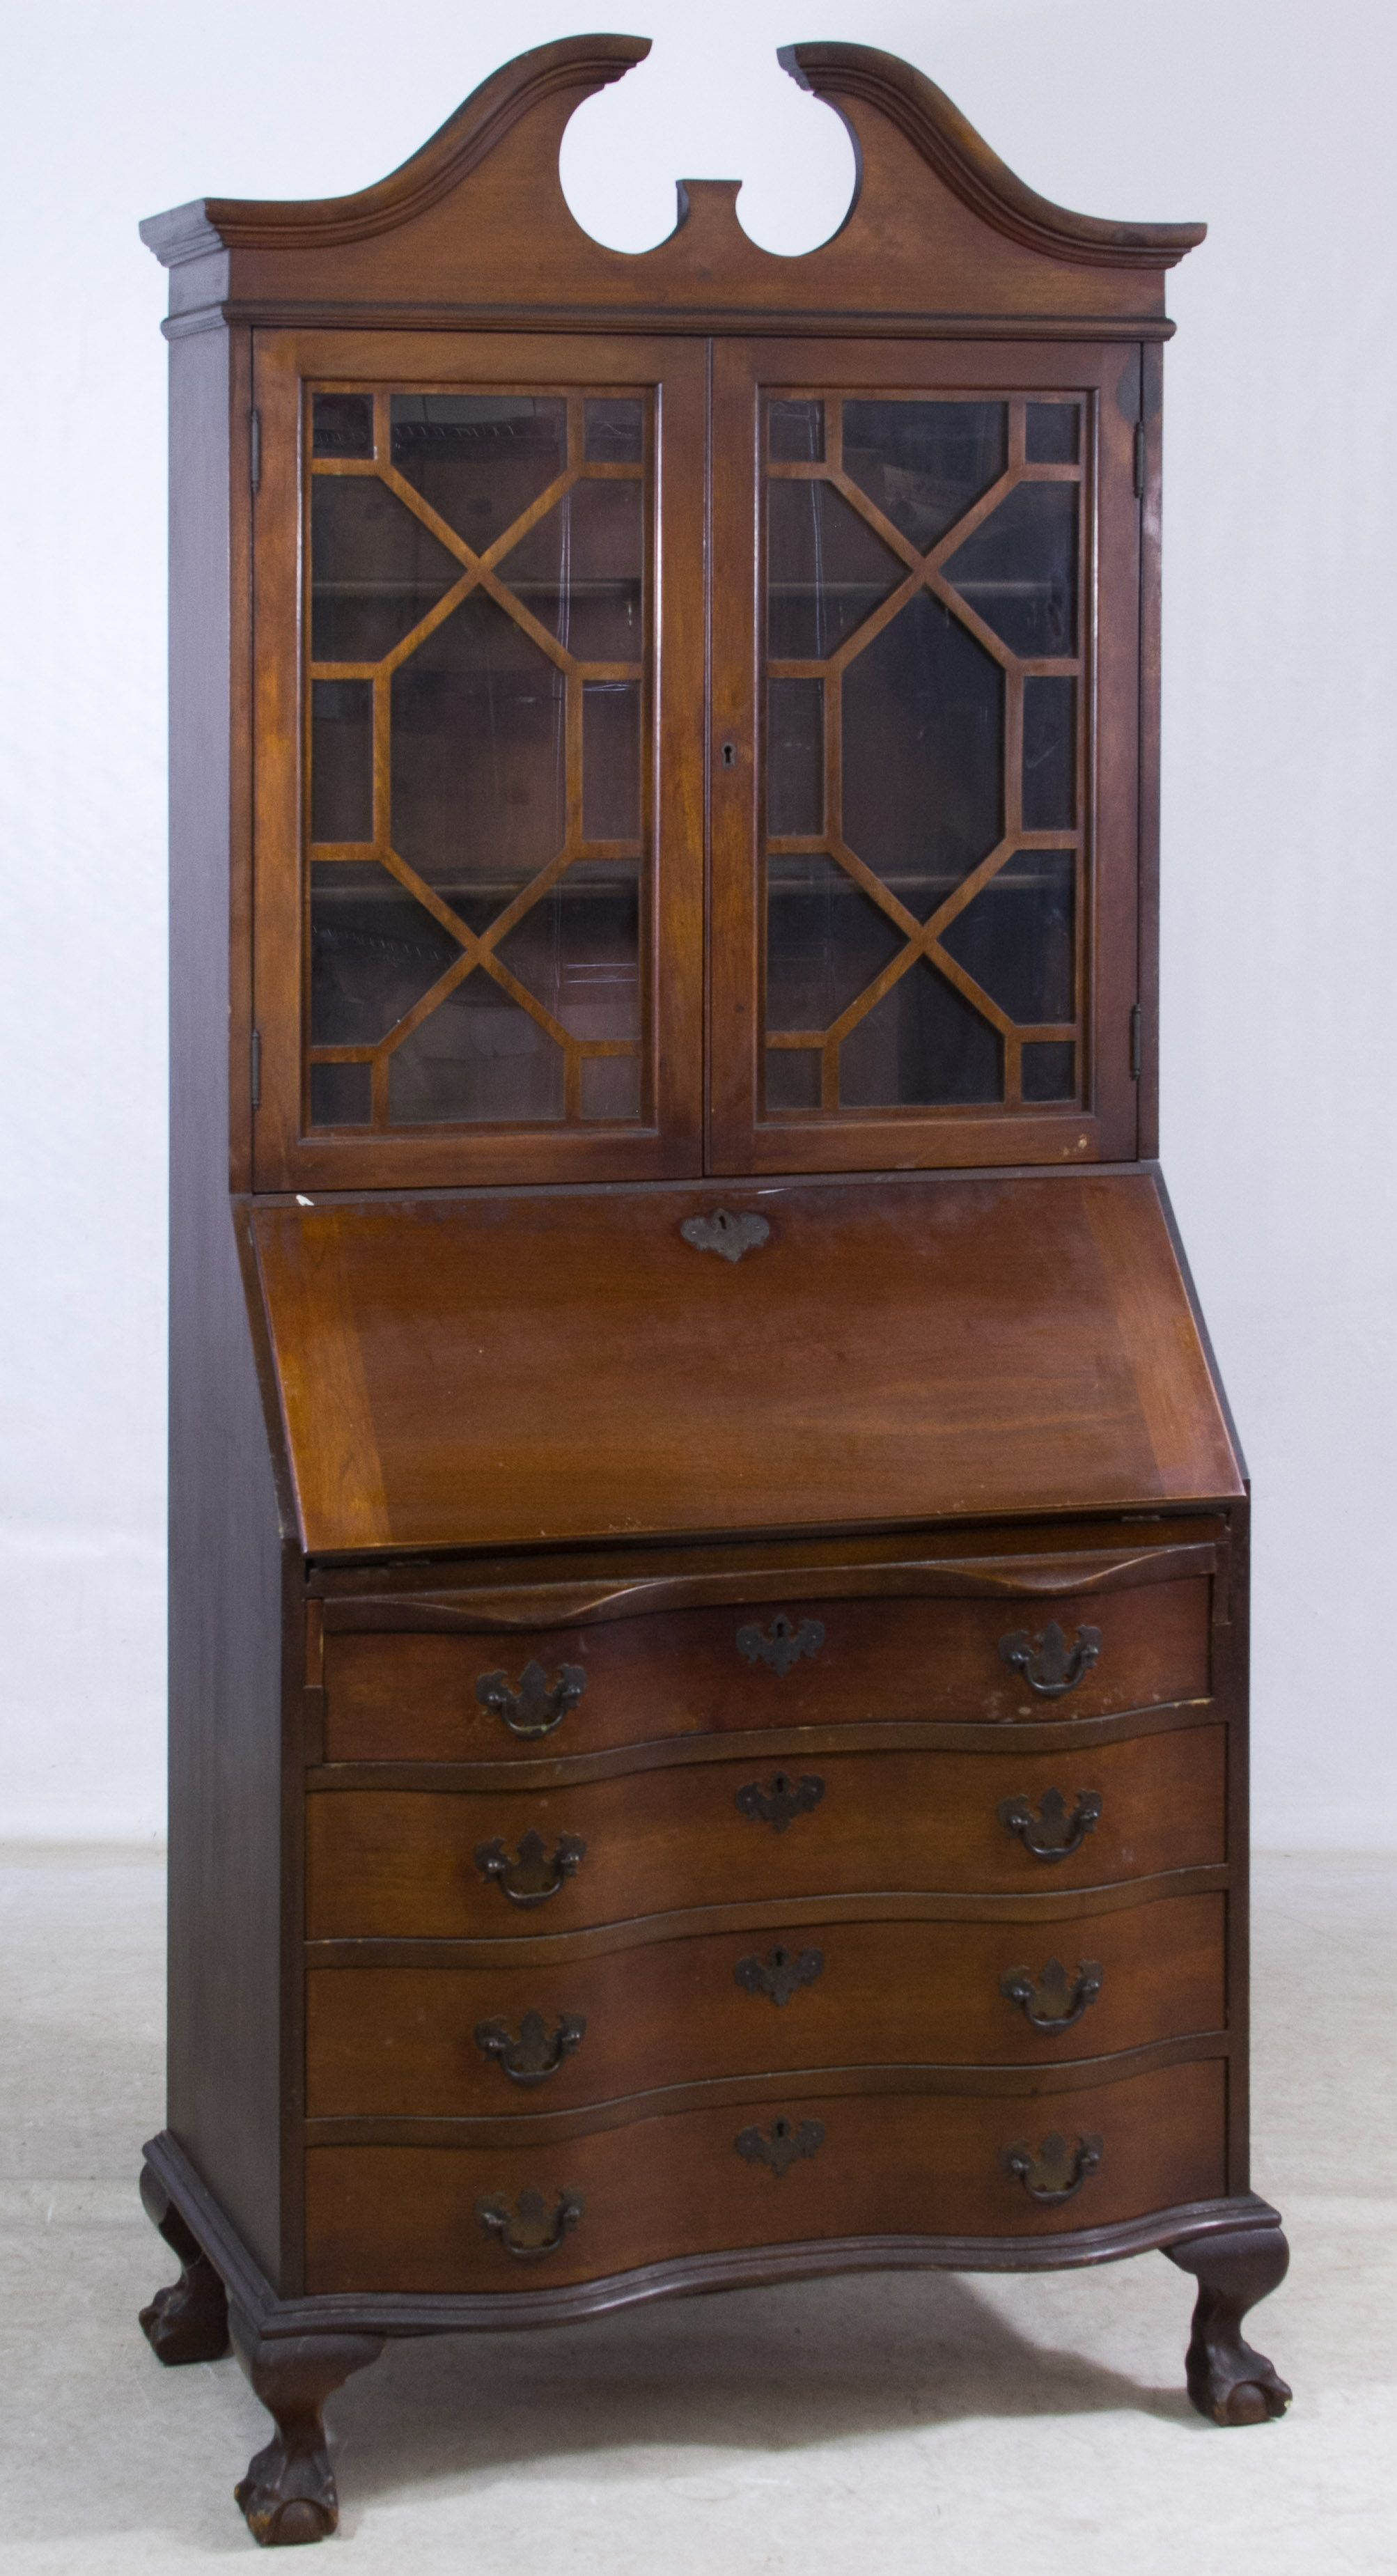 Lot 92 Mahogany Dresser Having four small center drawers flanked